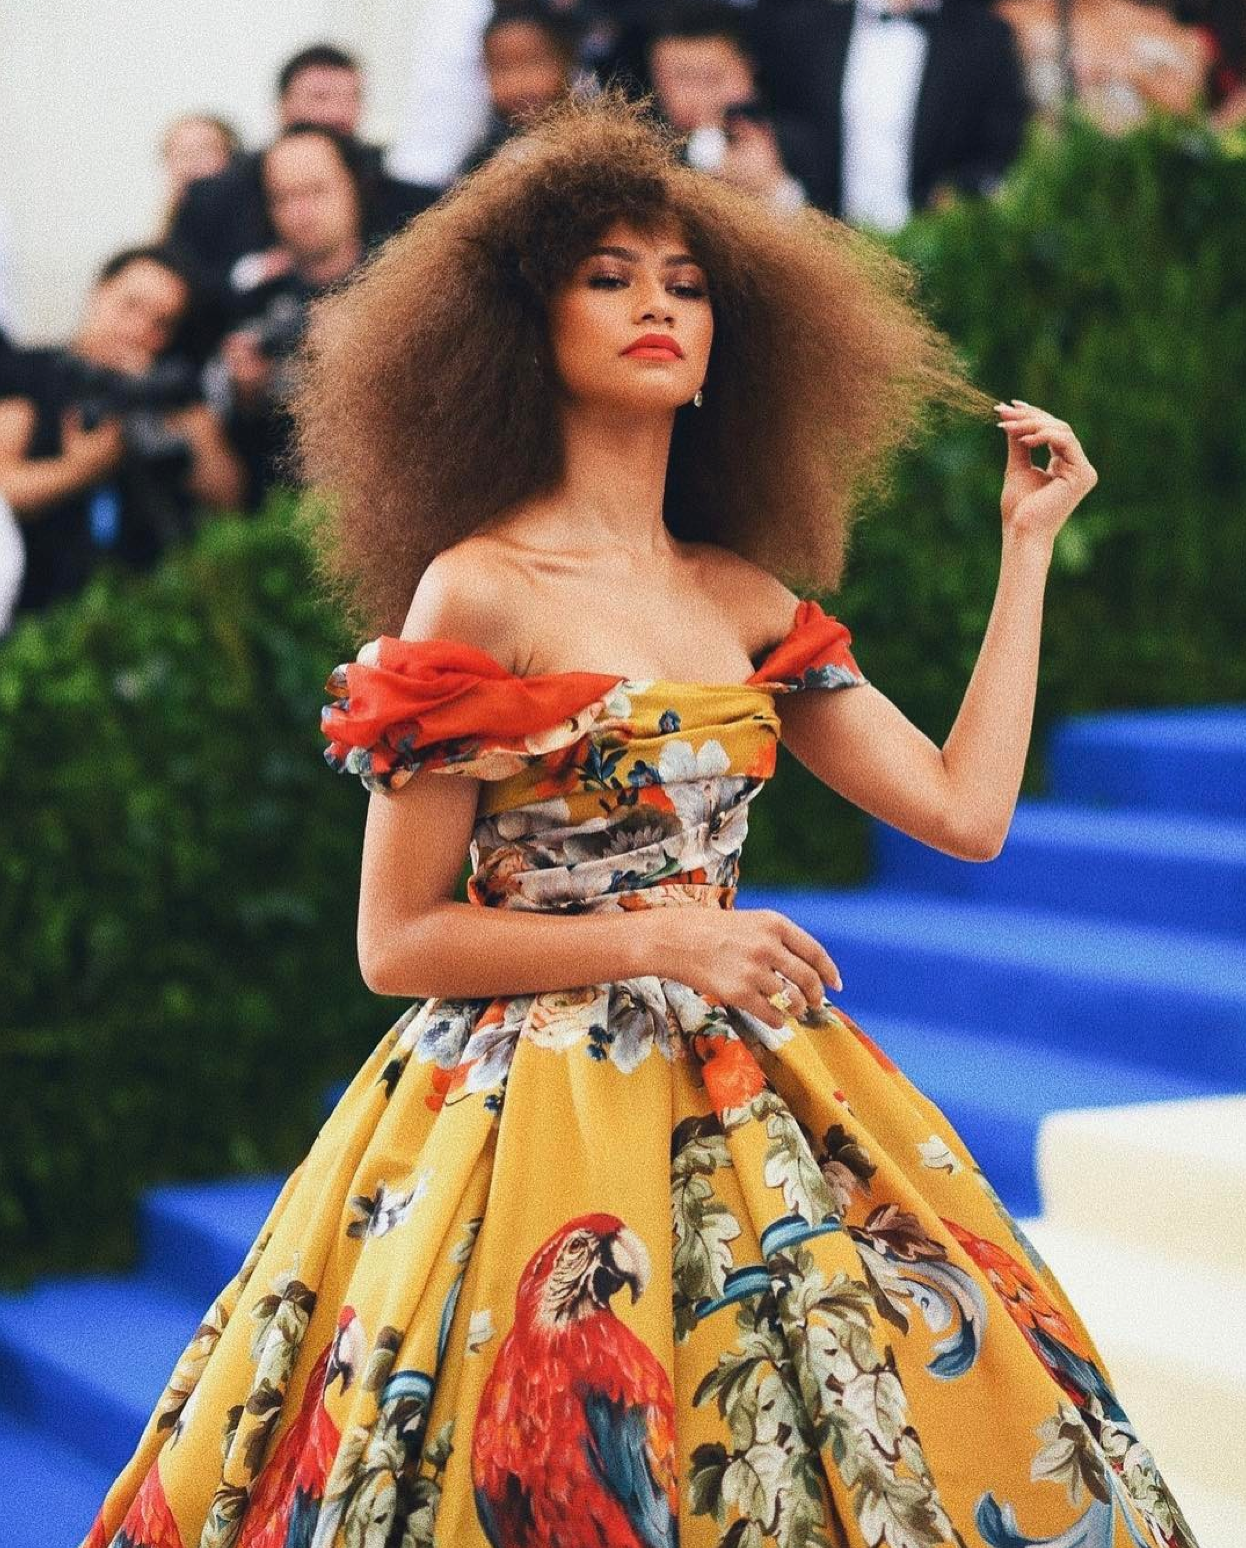 Zendaya had all the feels after Rihanna shouted out her Met Gala look